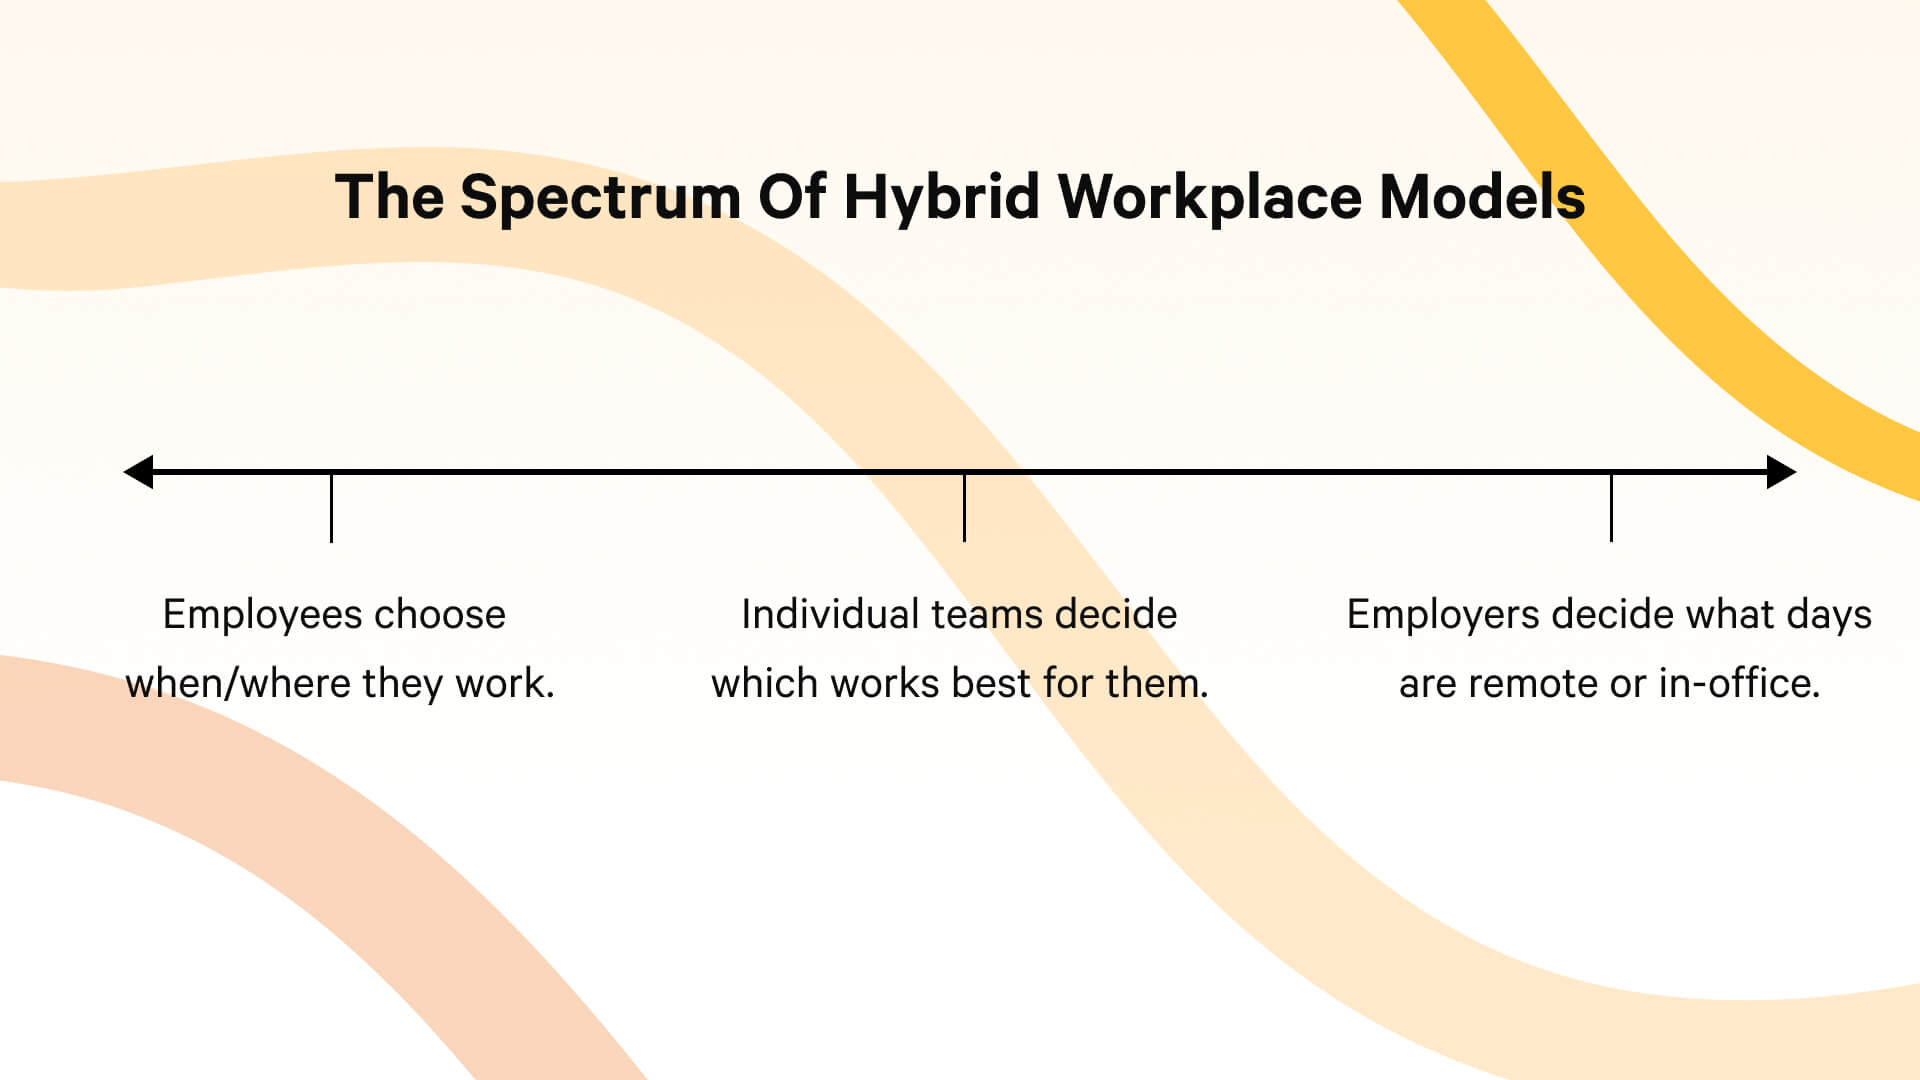 Different types of hybrid workplaces fall along a spectrum of employee freedom vs centralized decision making